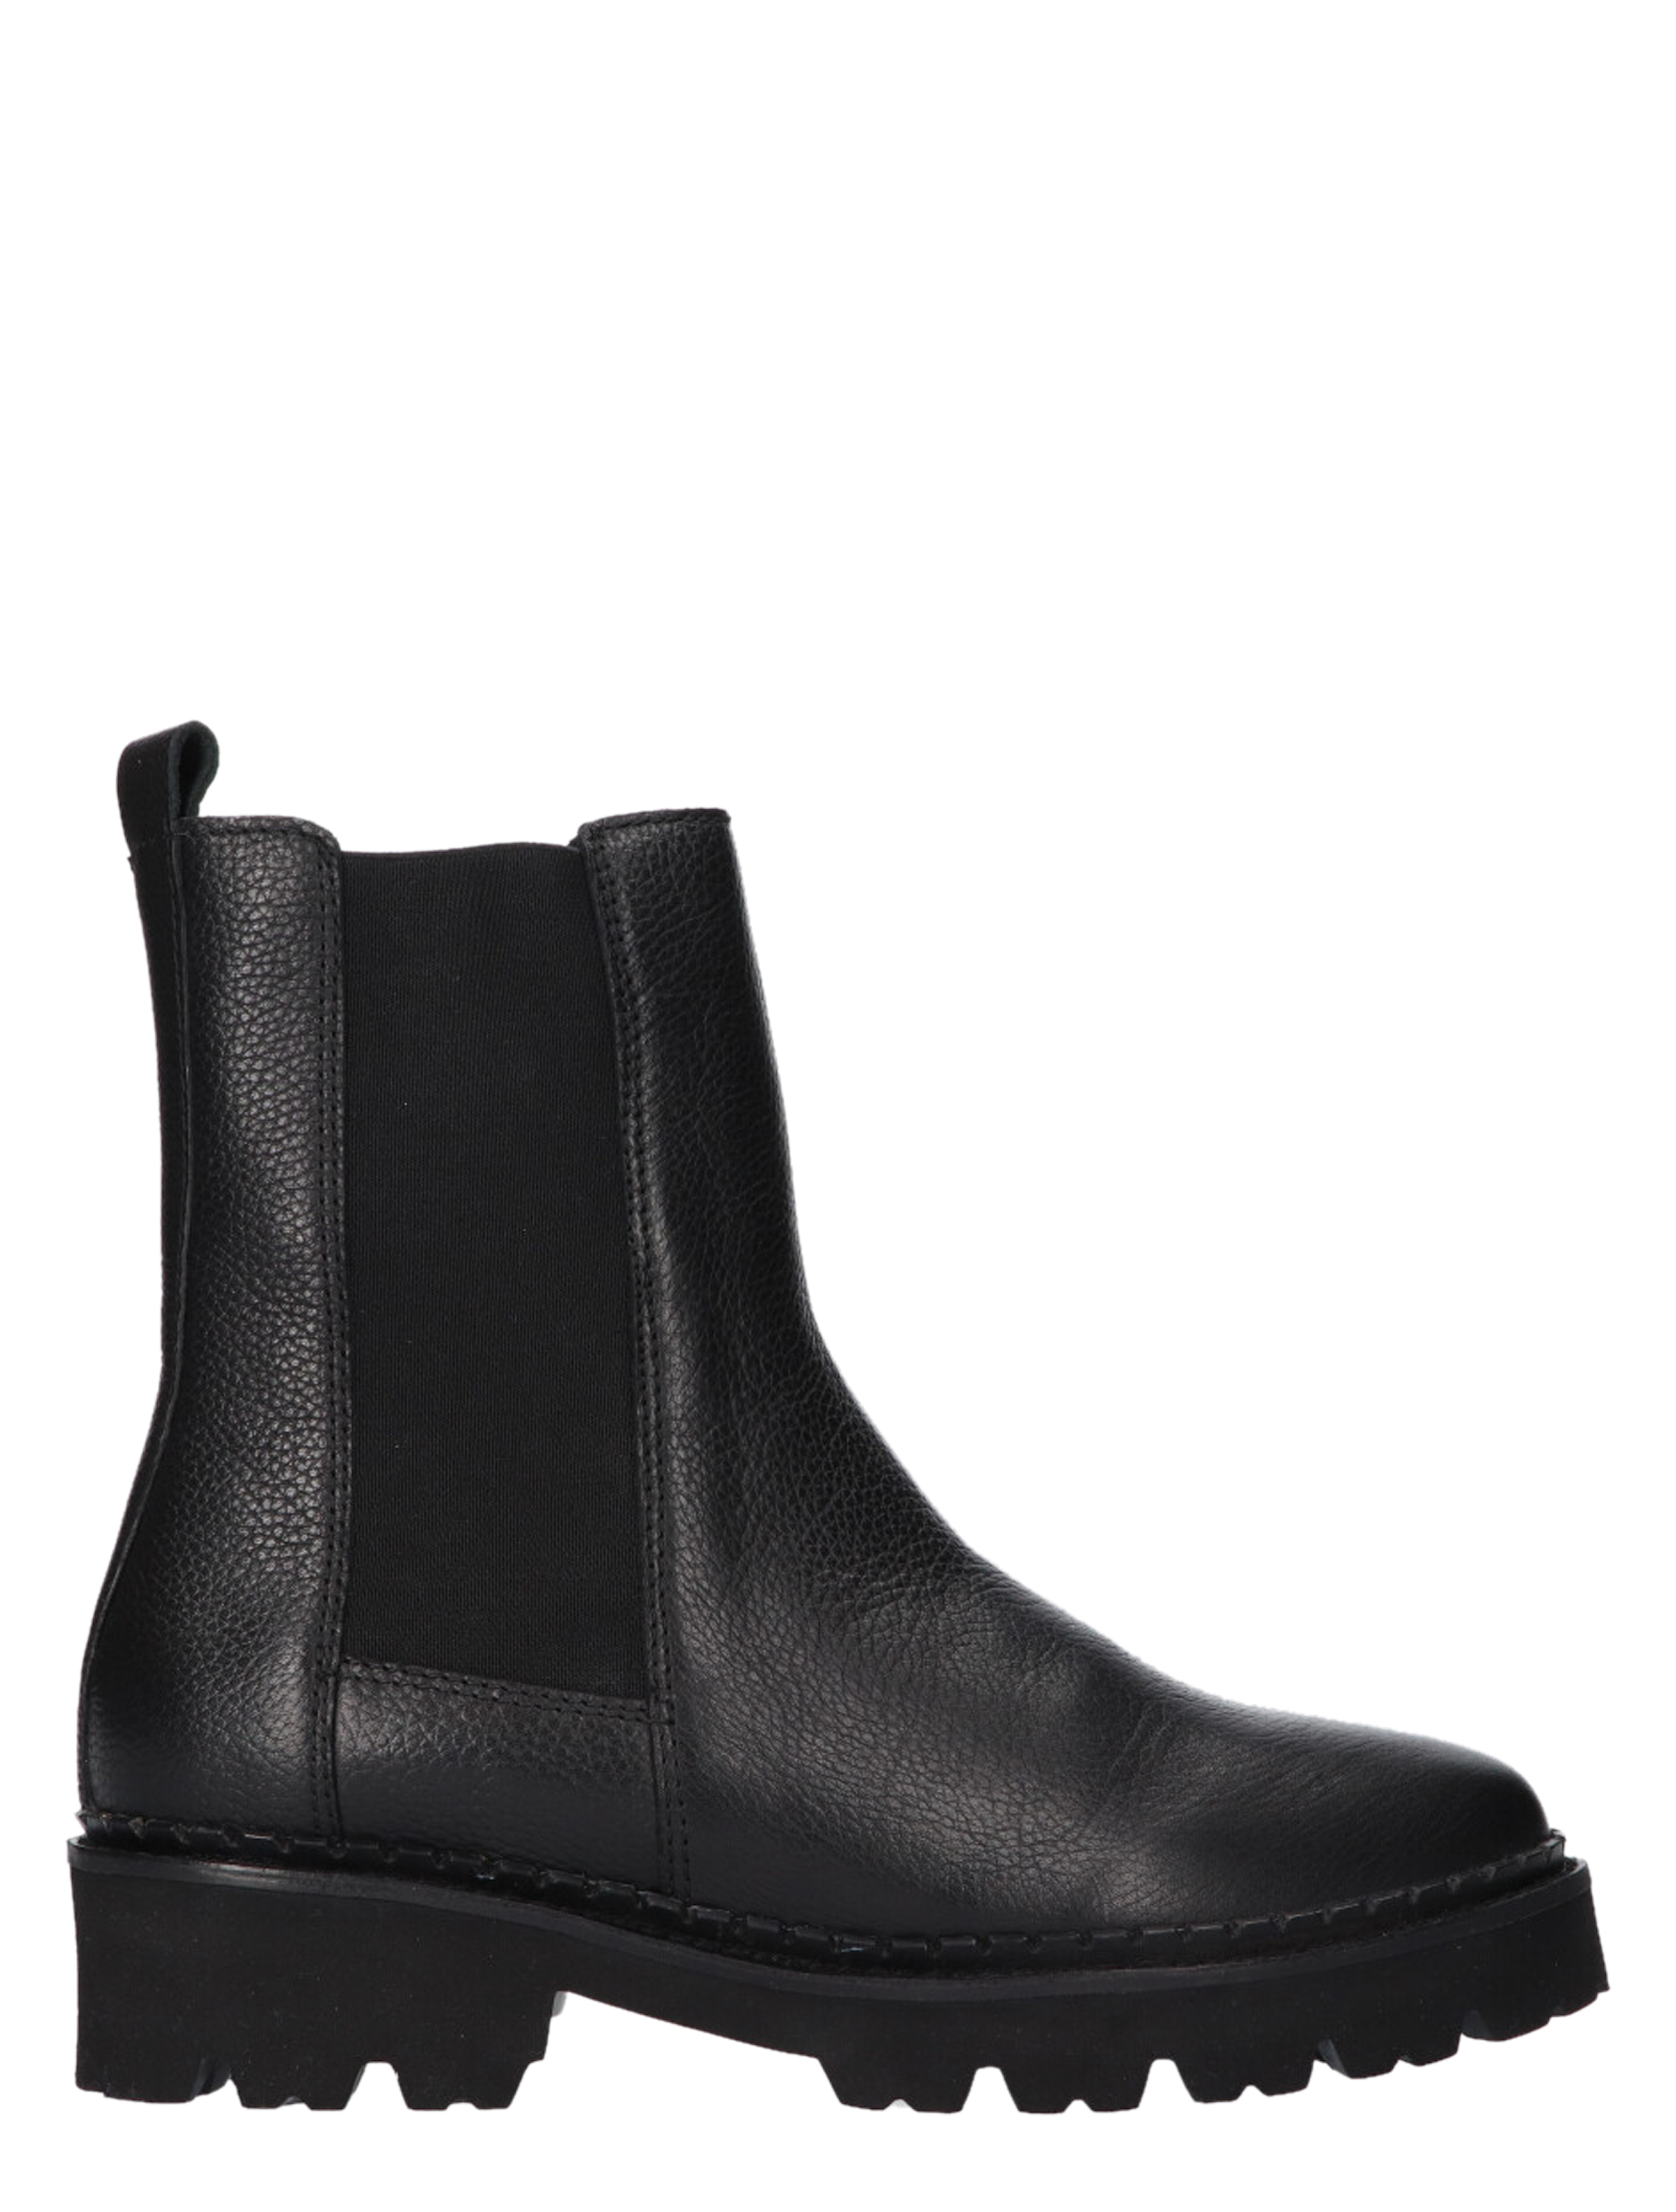 Tango Bee Bold 509-a Black Chelsea boots